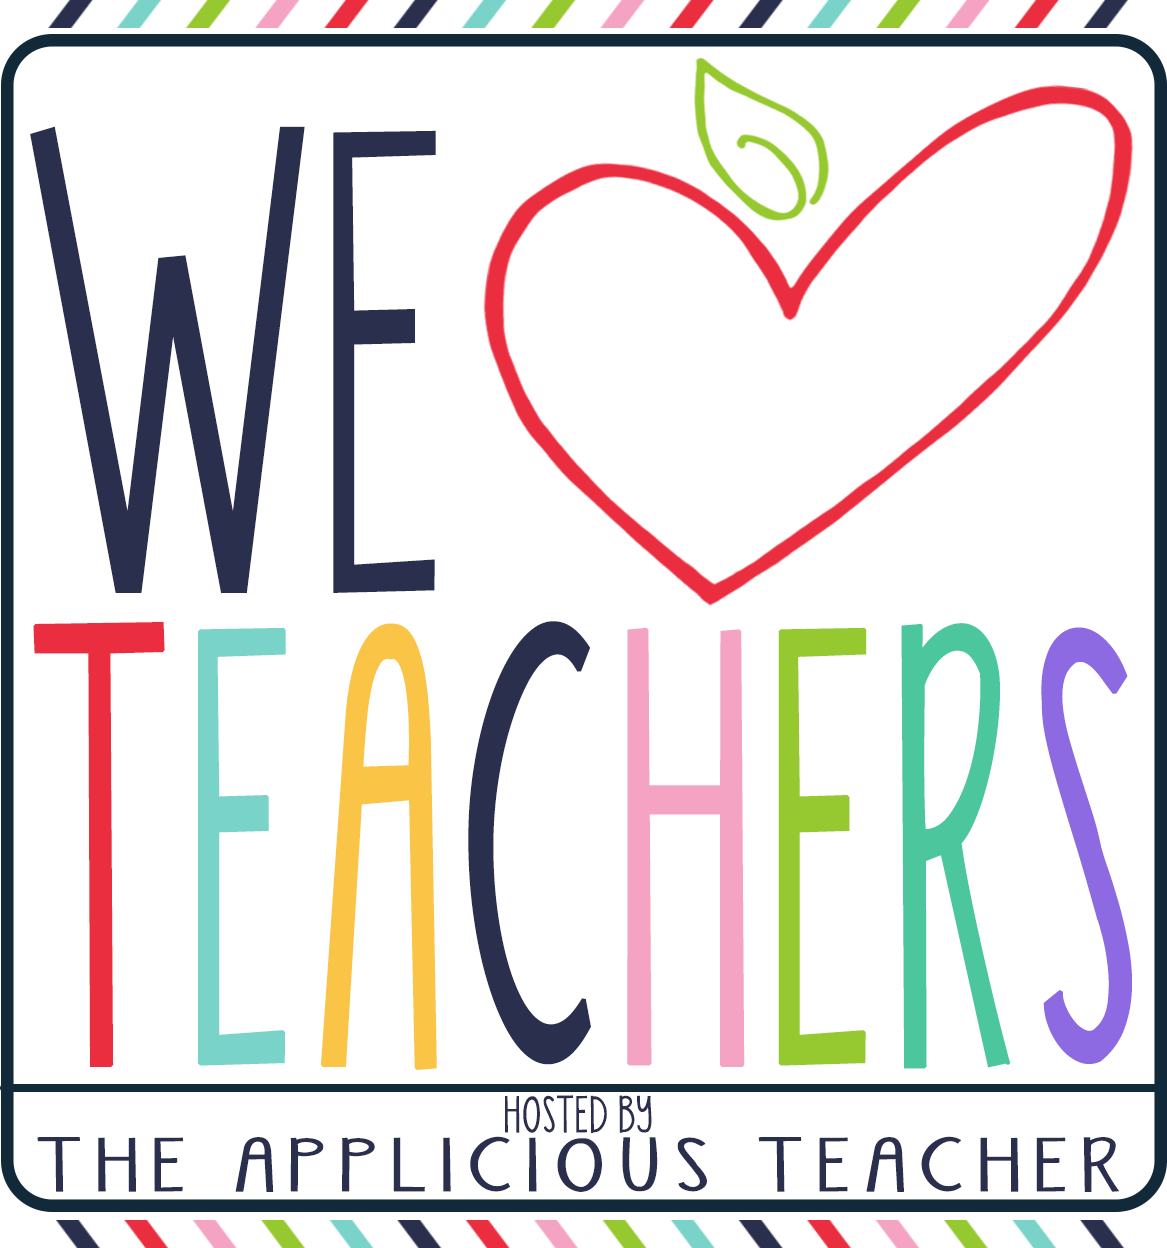 http://theappliciousteacher.blogspot.com/2014/05/we-heart-teachers-saluting-those-who.html